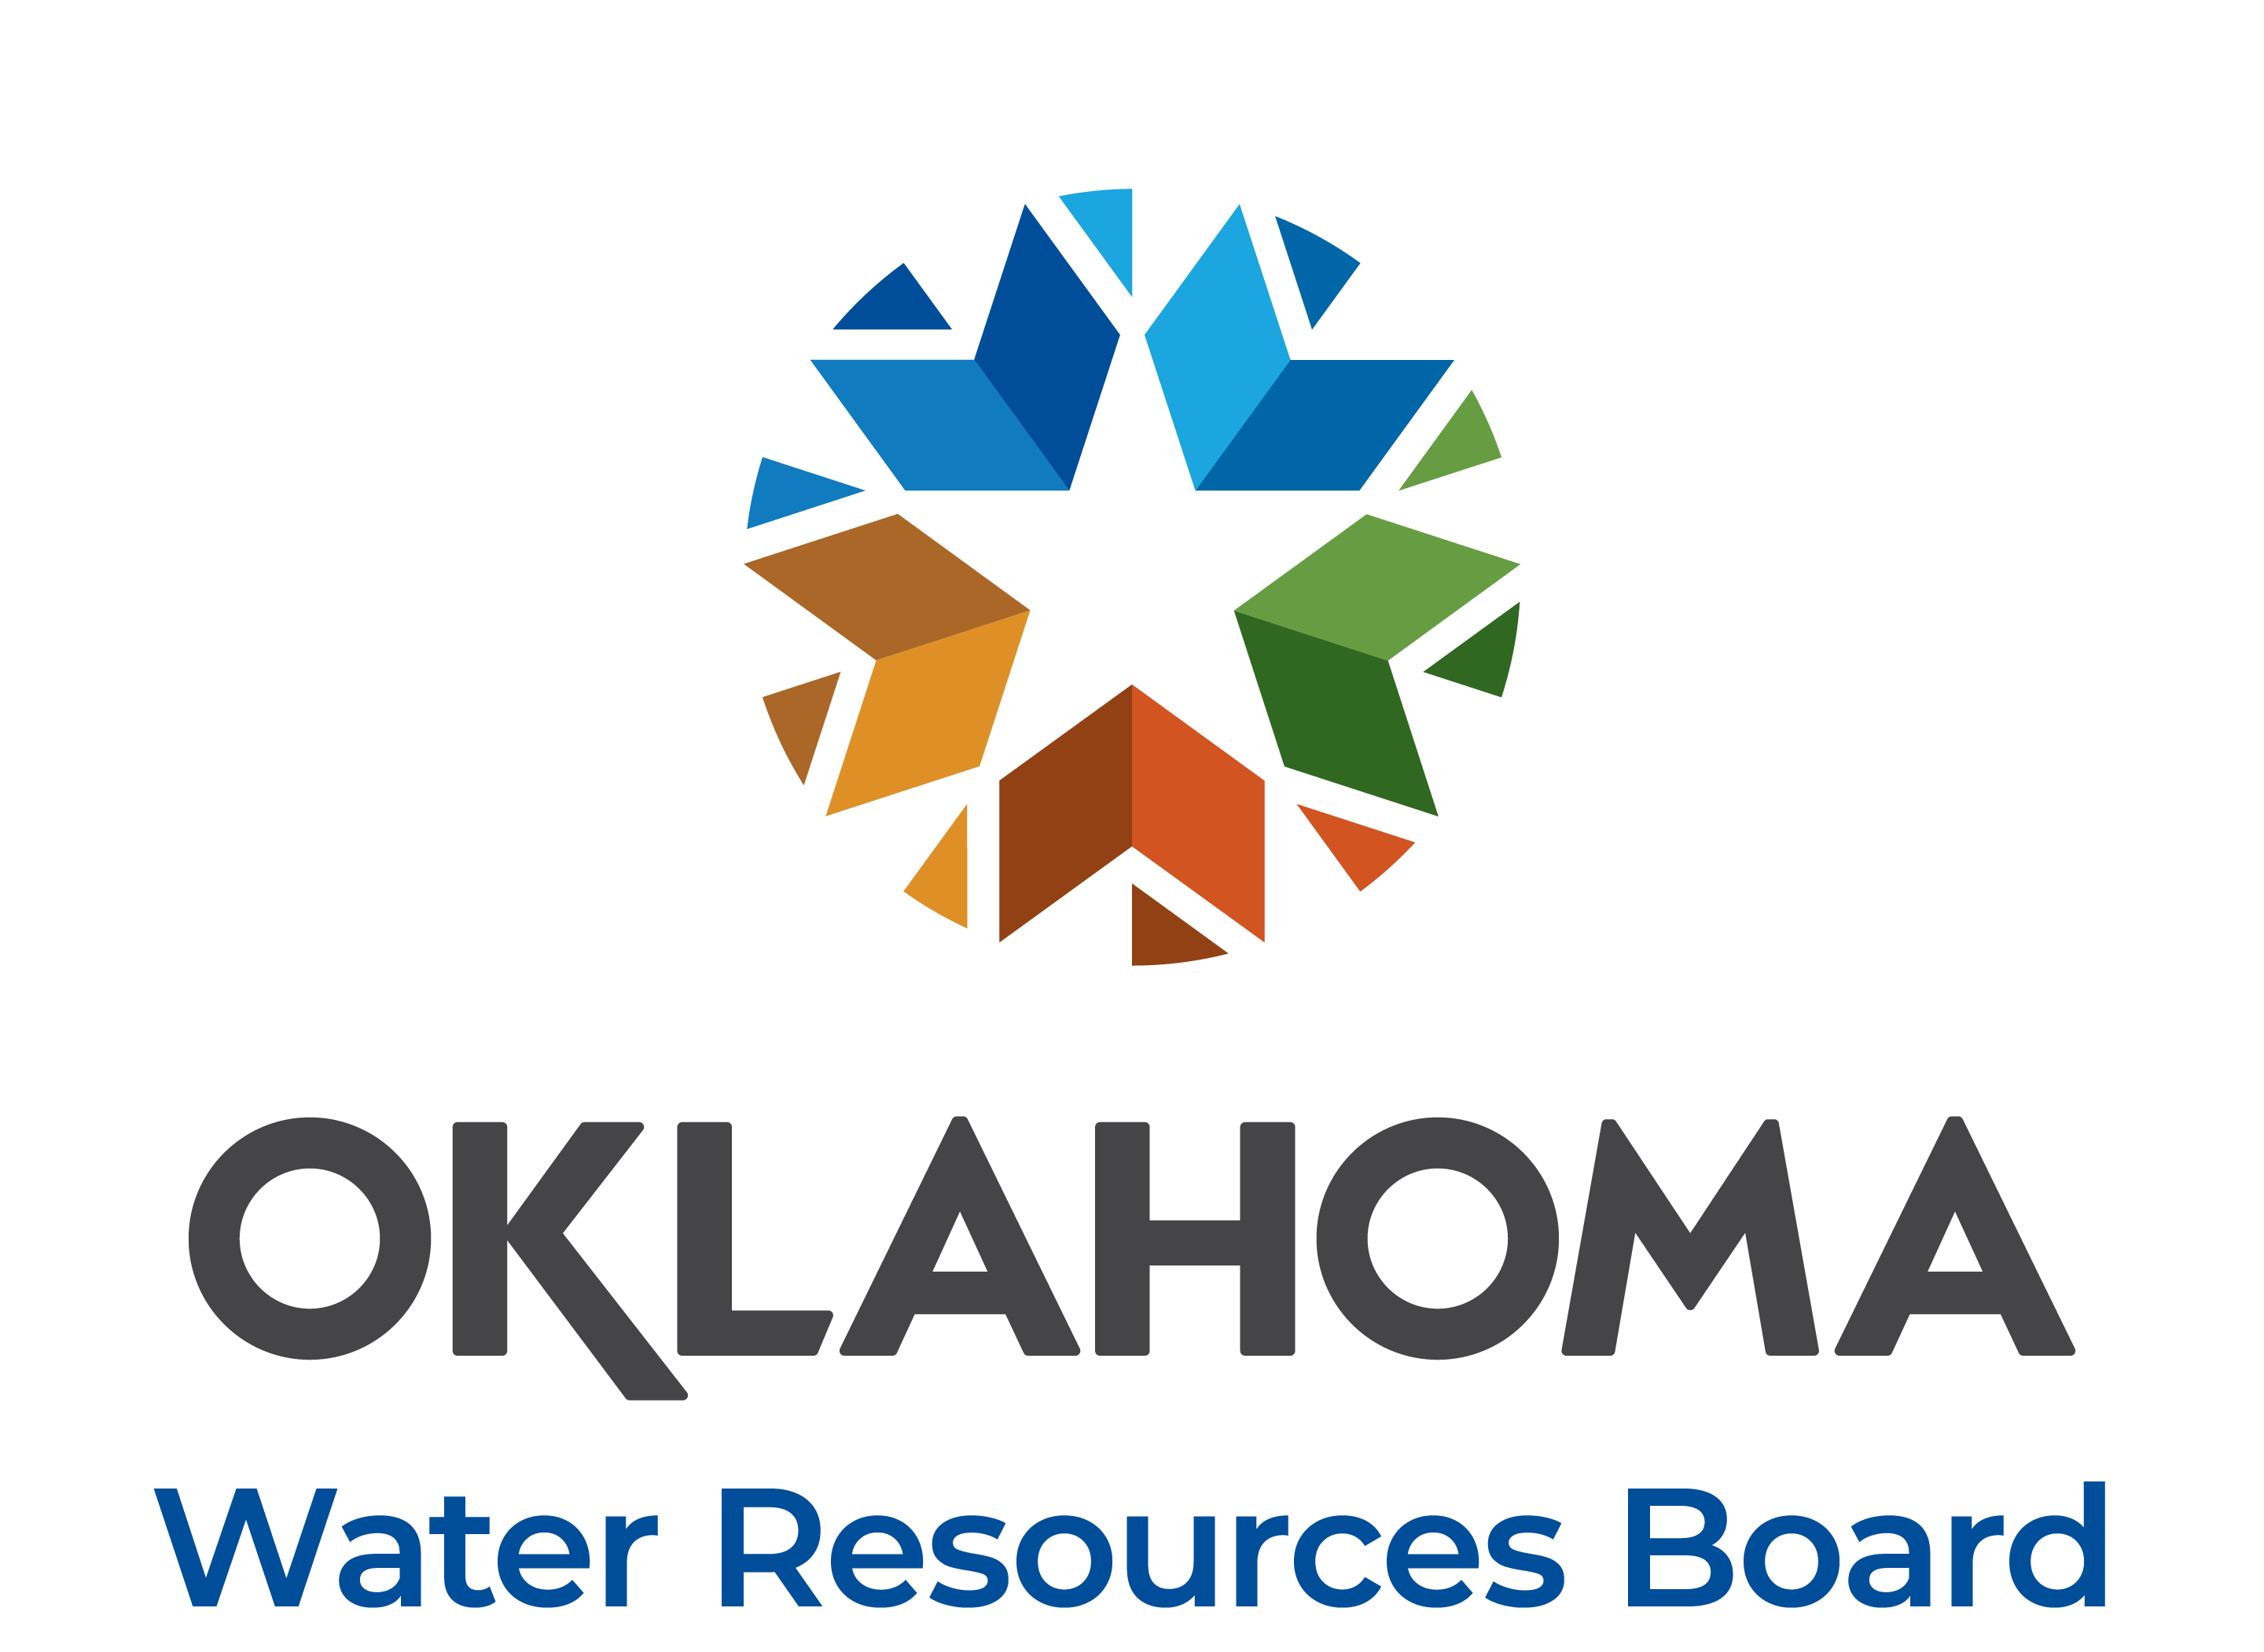 Oklahoma Water Resources Board - Official Seal or Logo